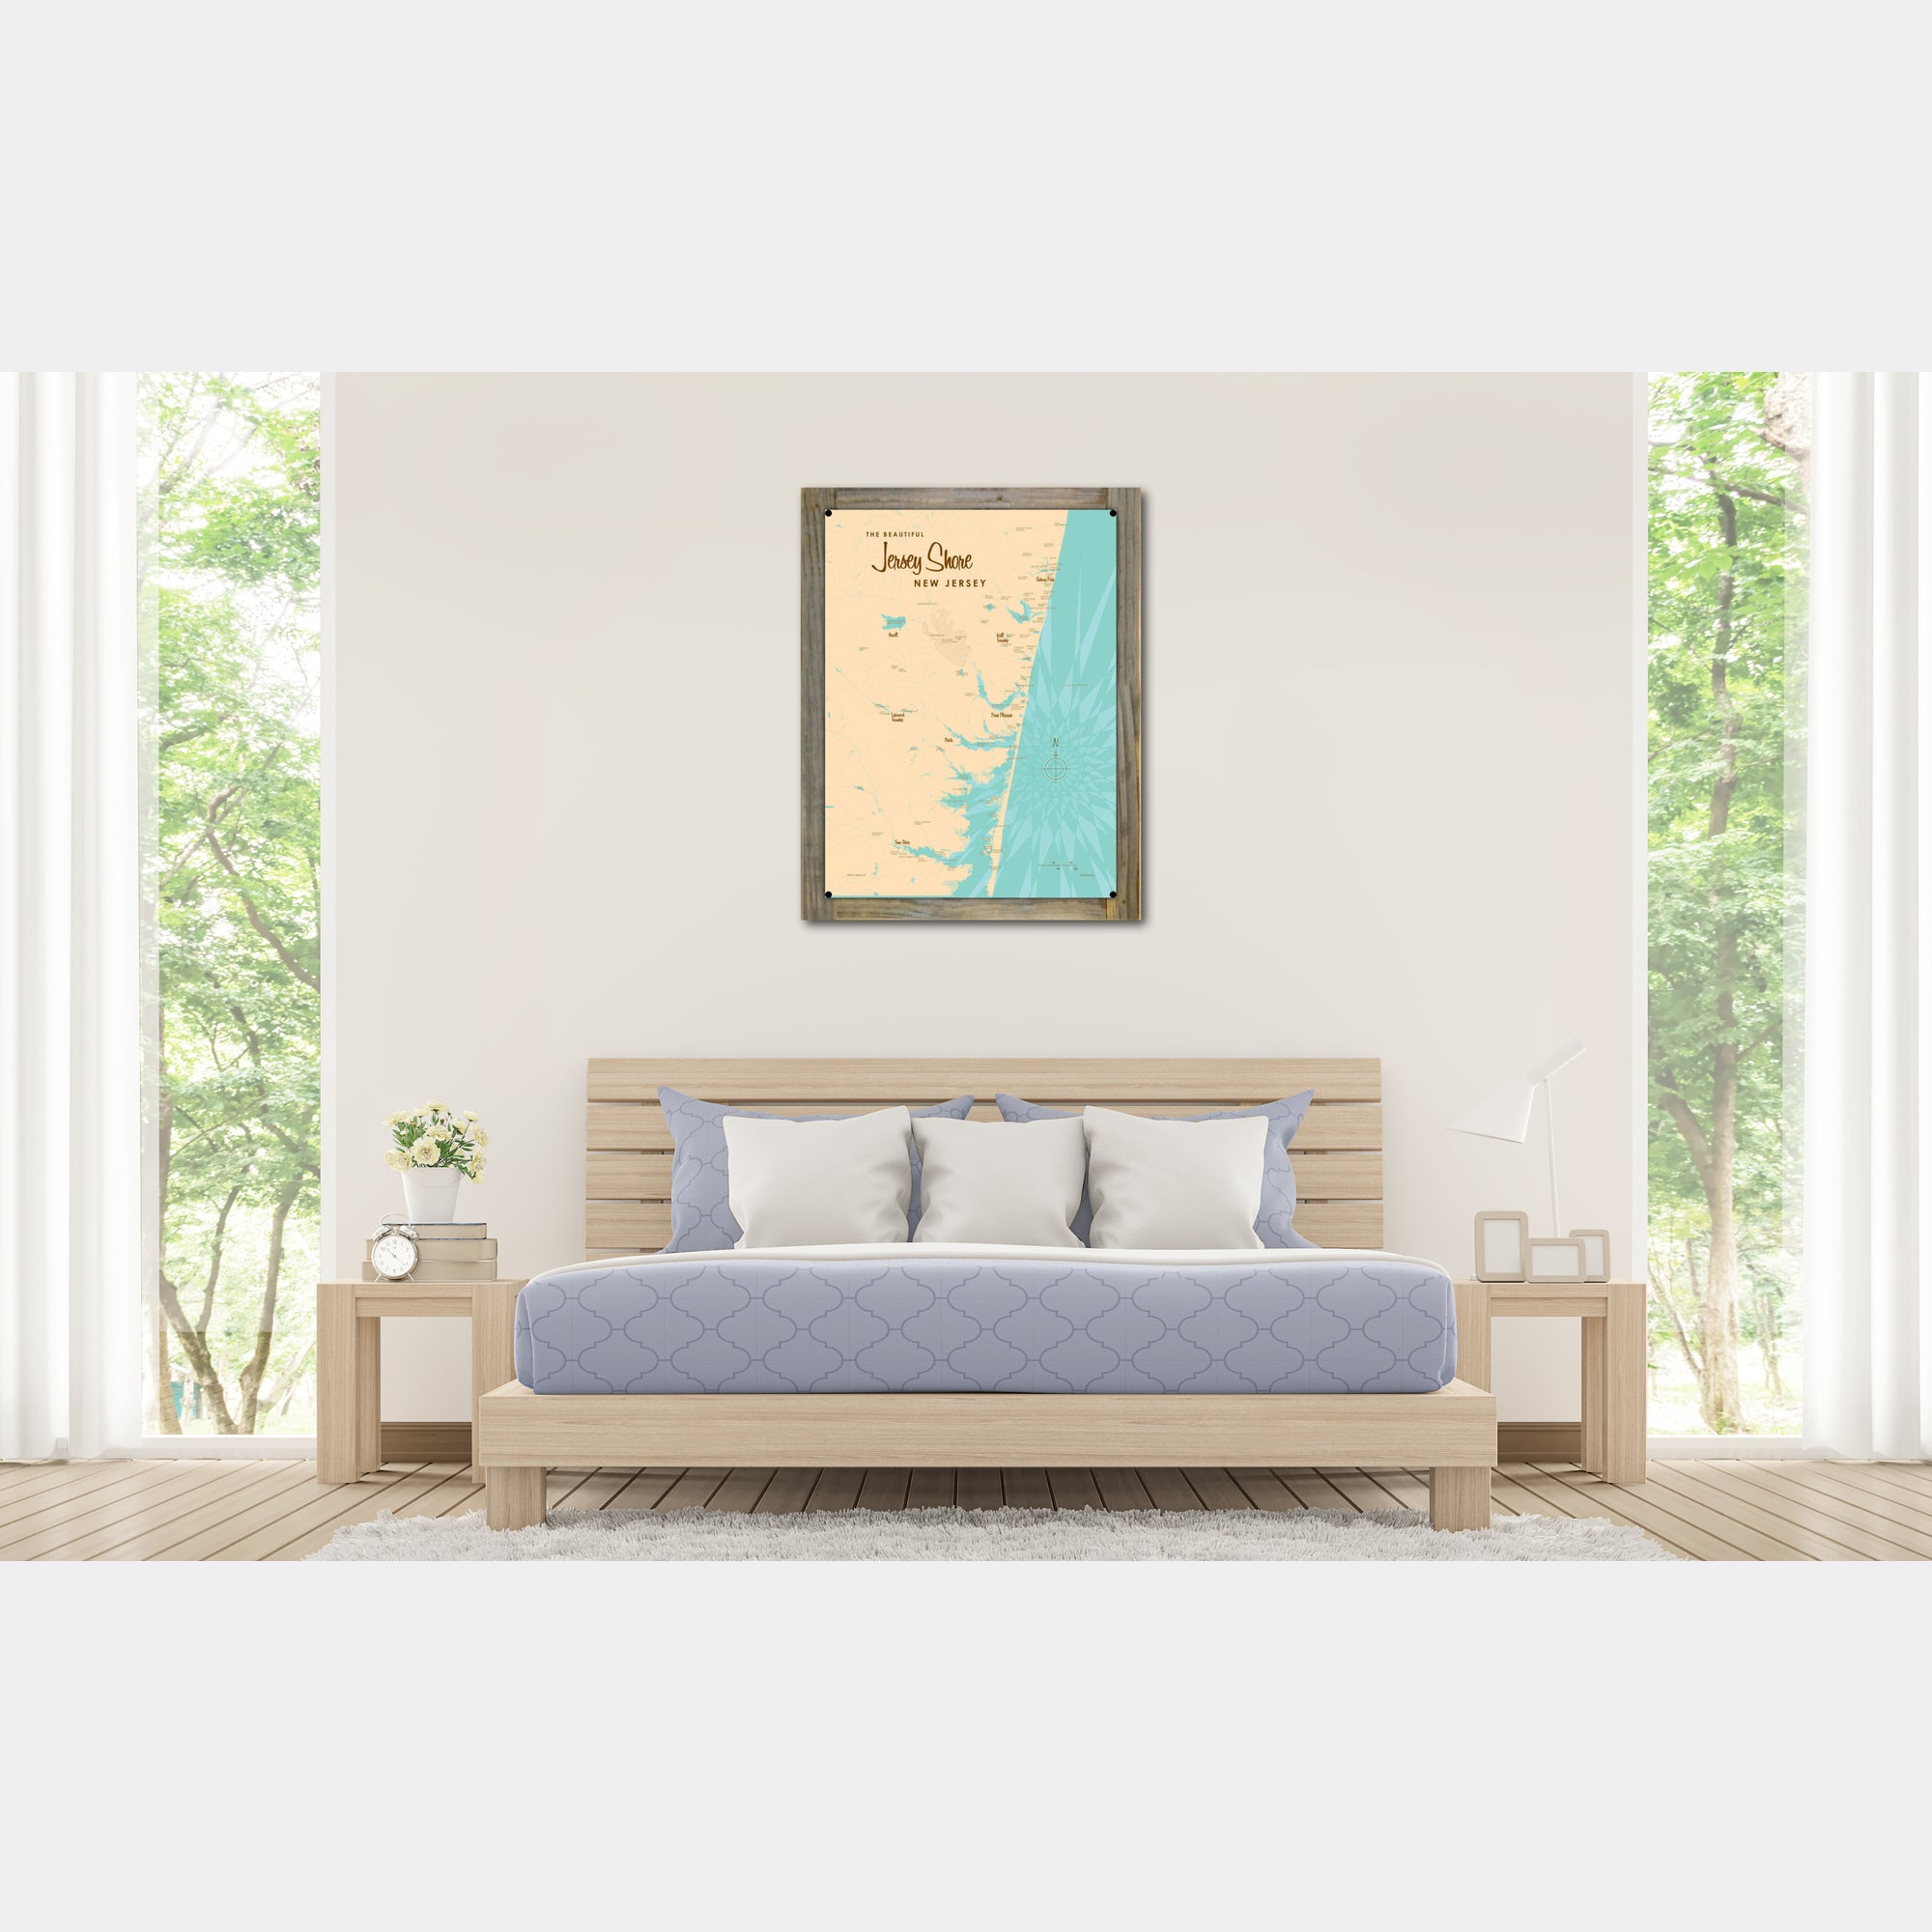 Jersey Shore New Jersey, Wood-Mounted Metal Sign Map Art